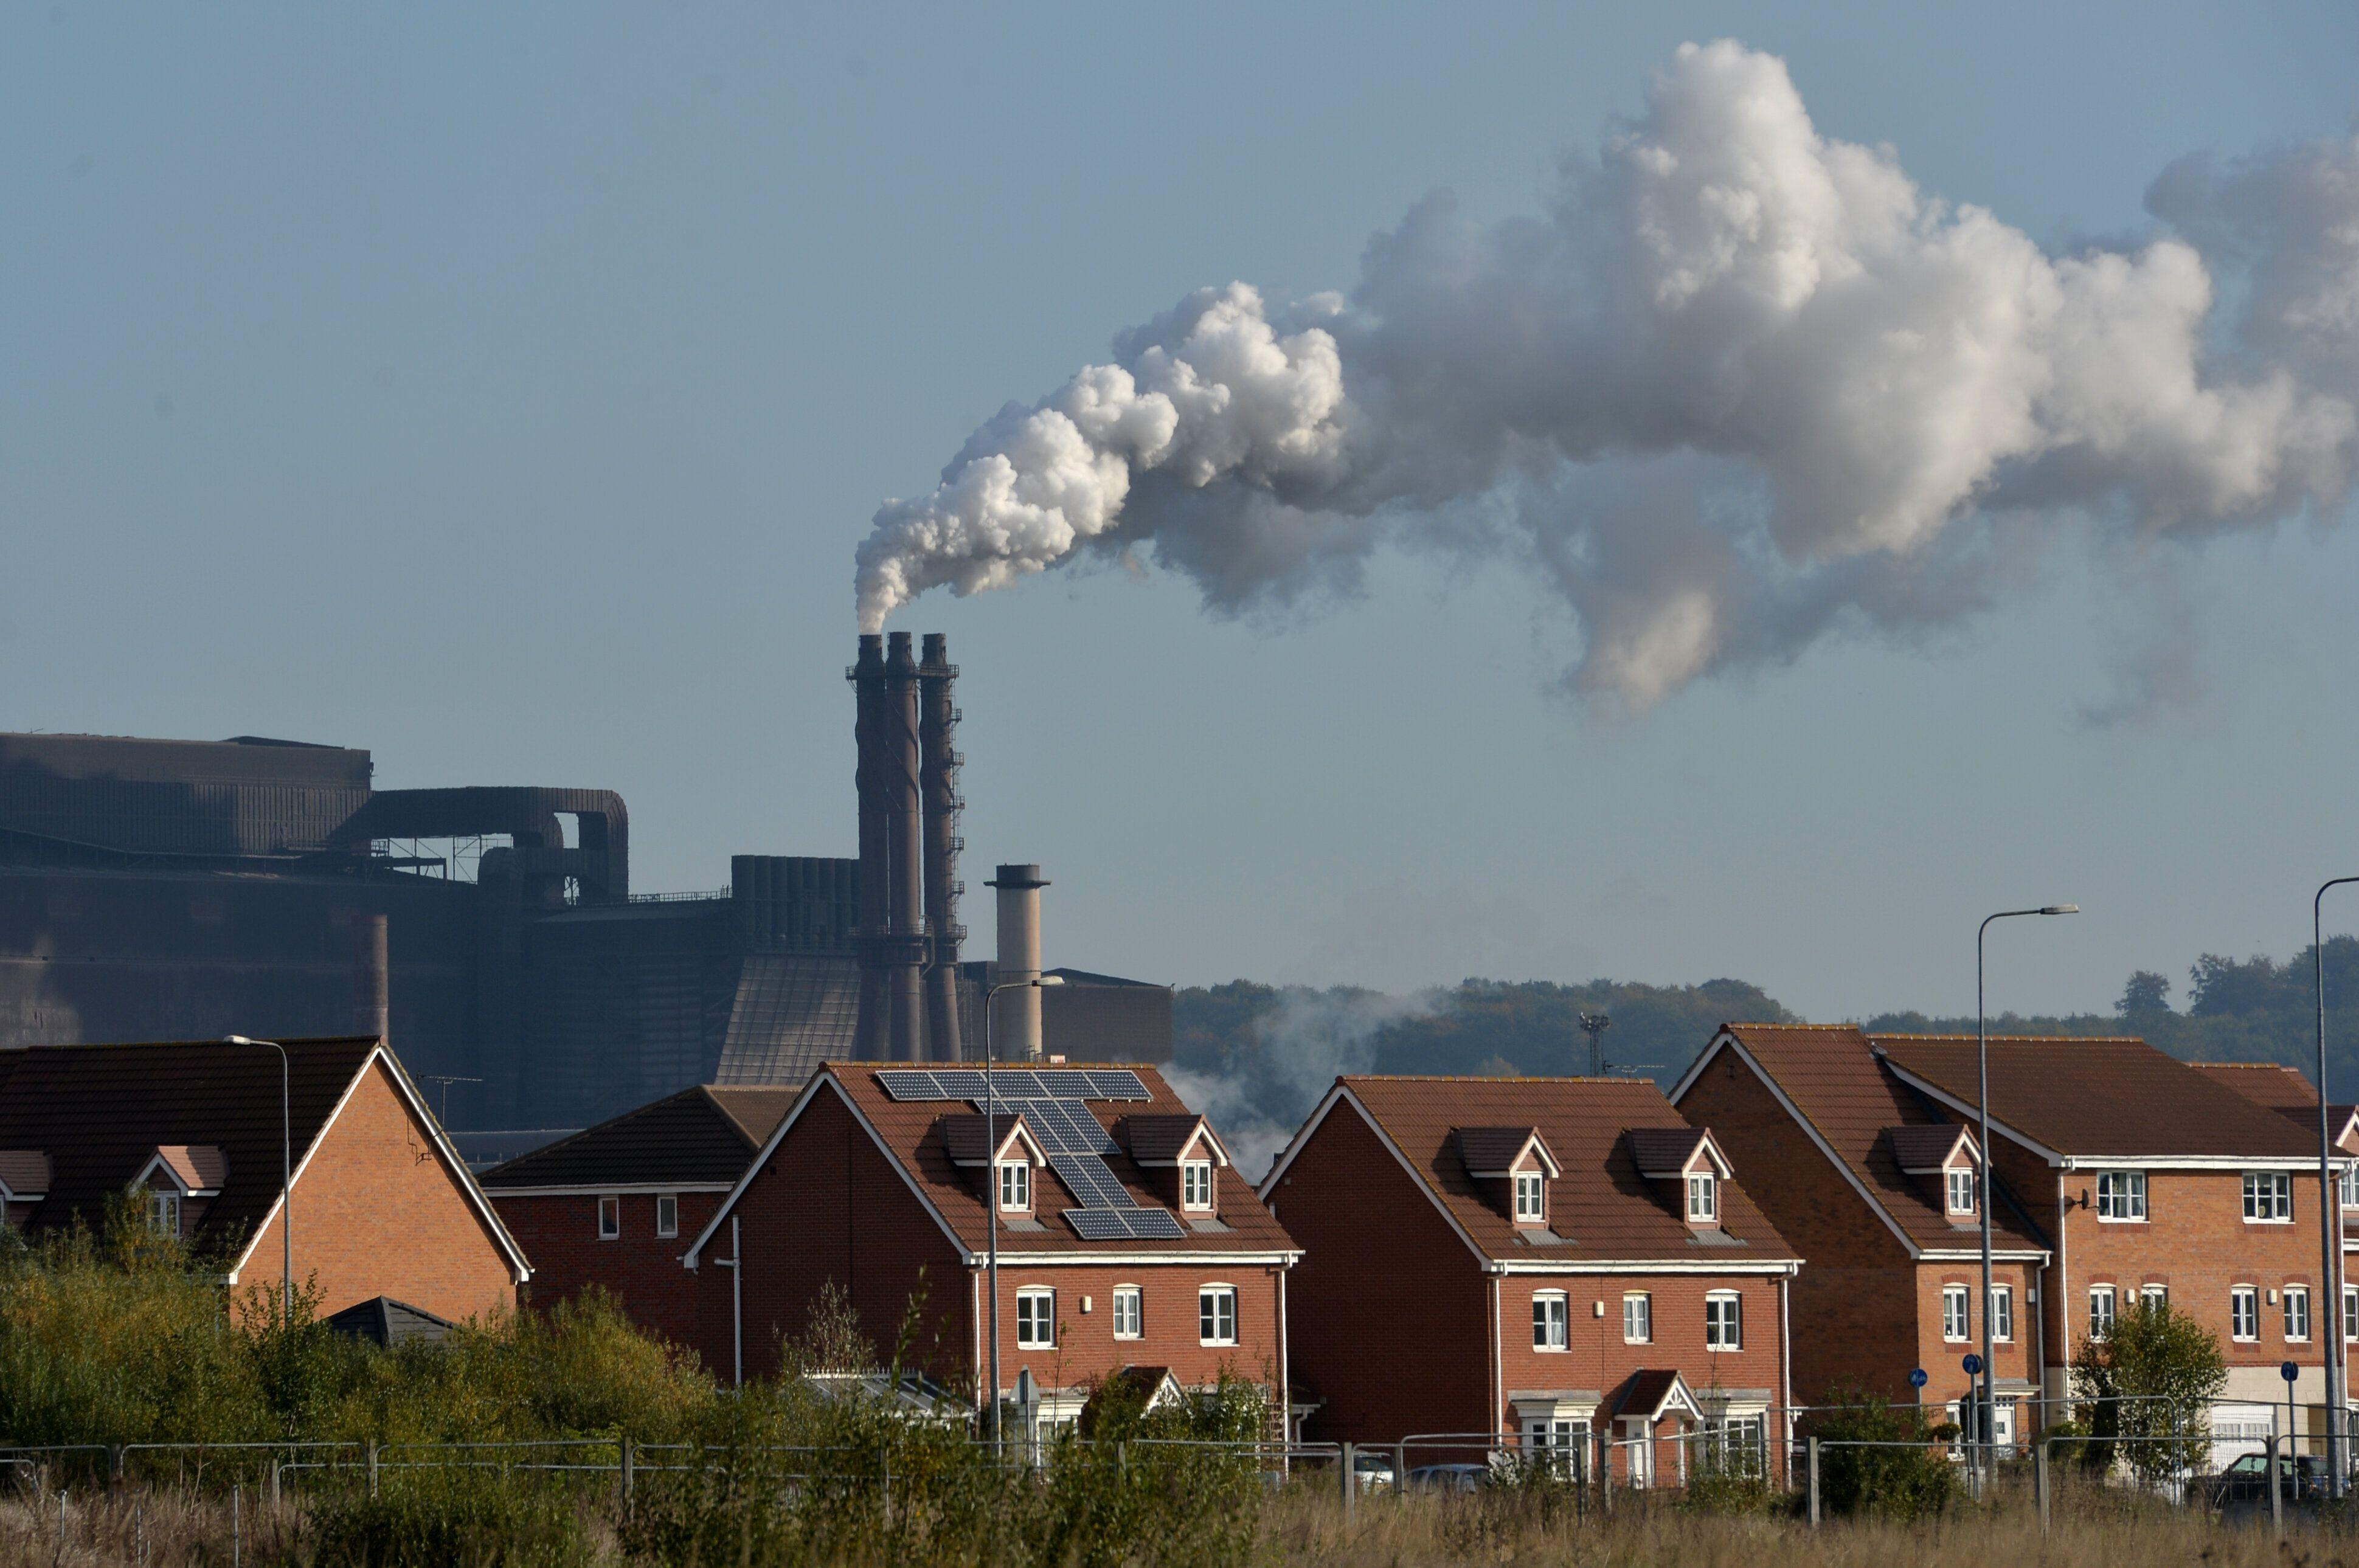 25,000 jobs at risk as British Steel battles for survival